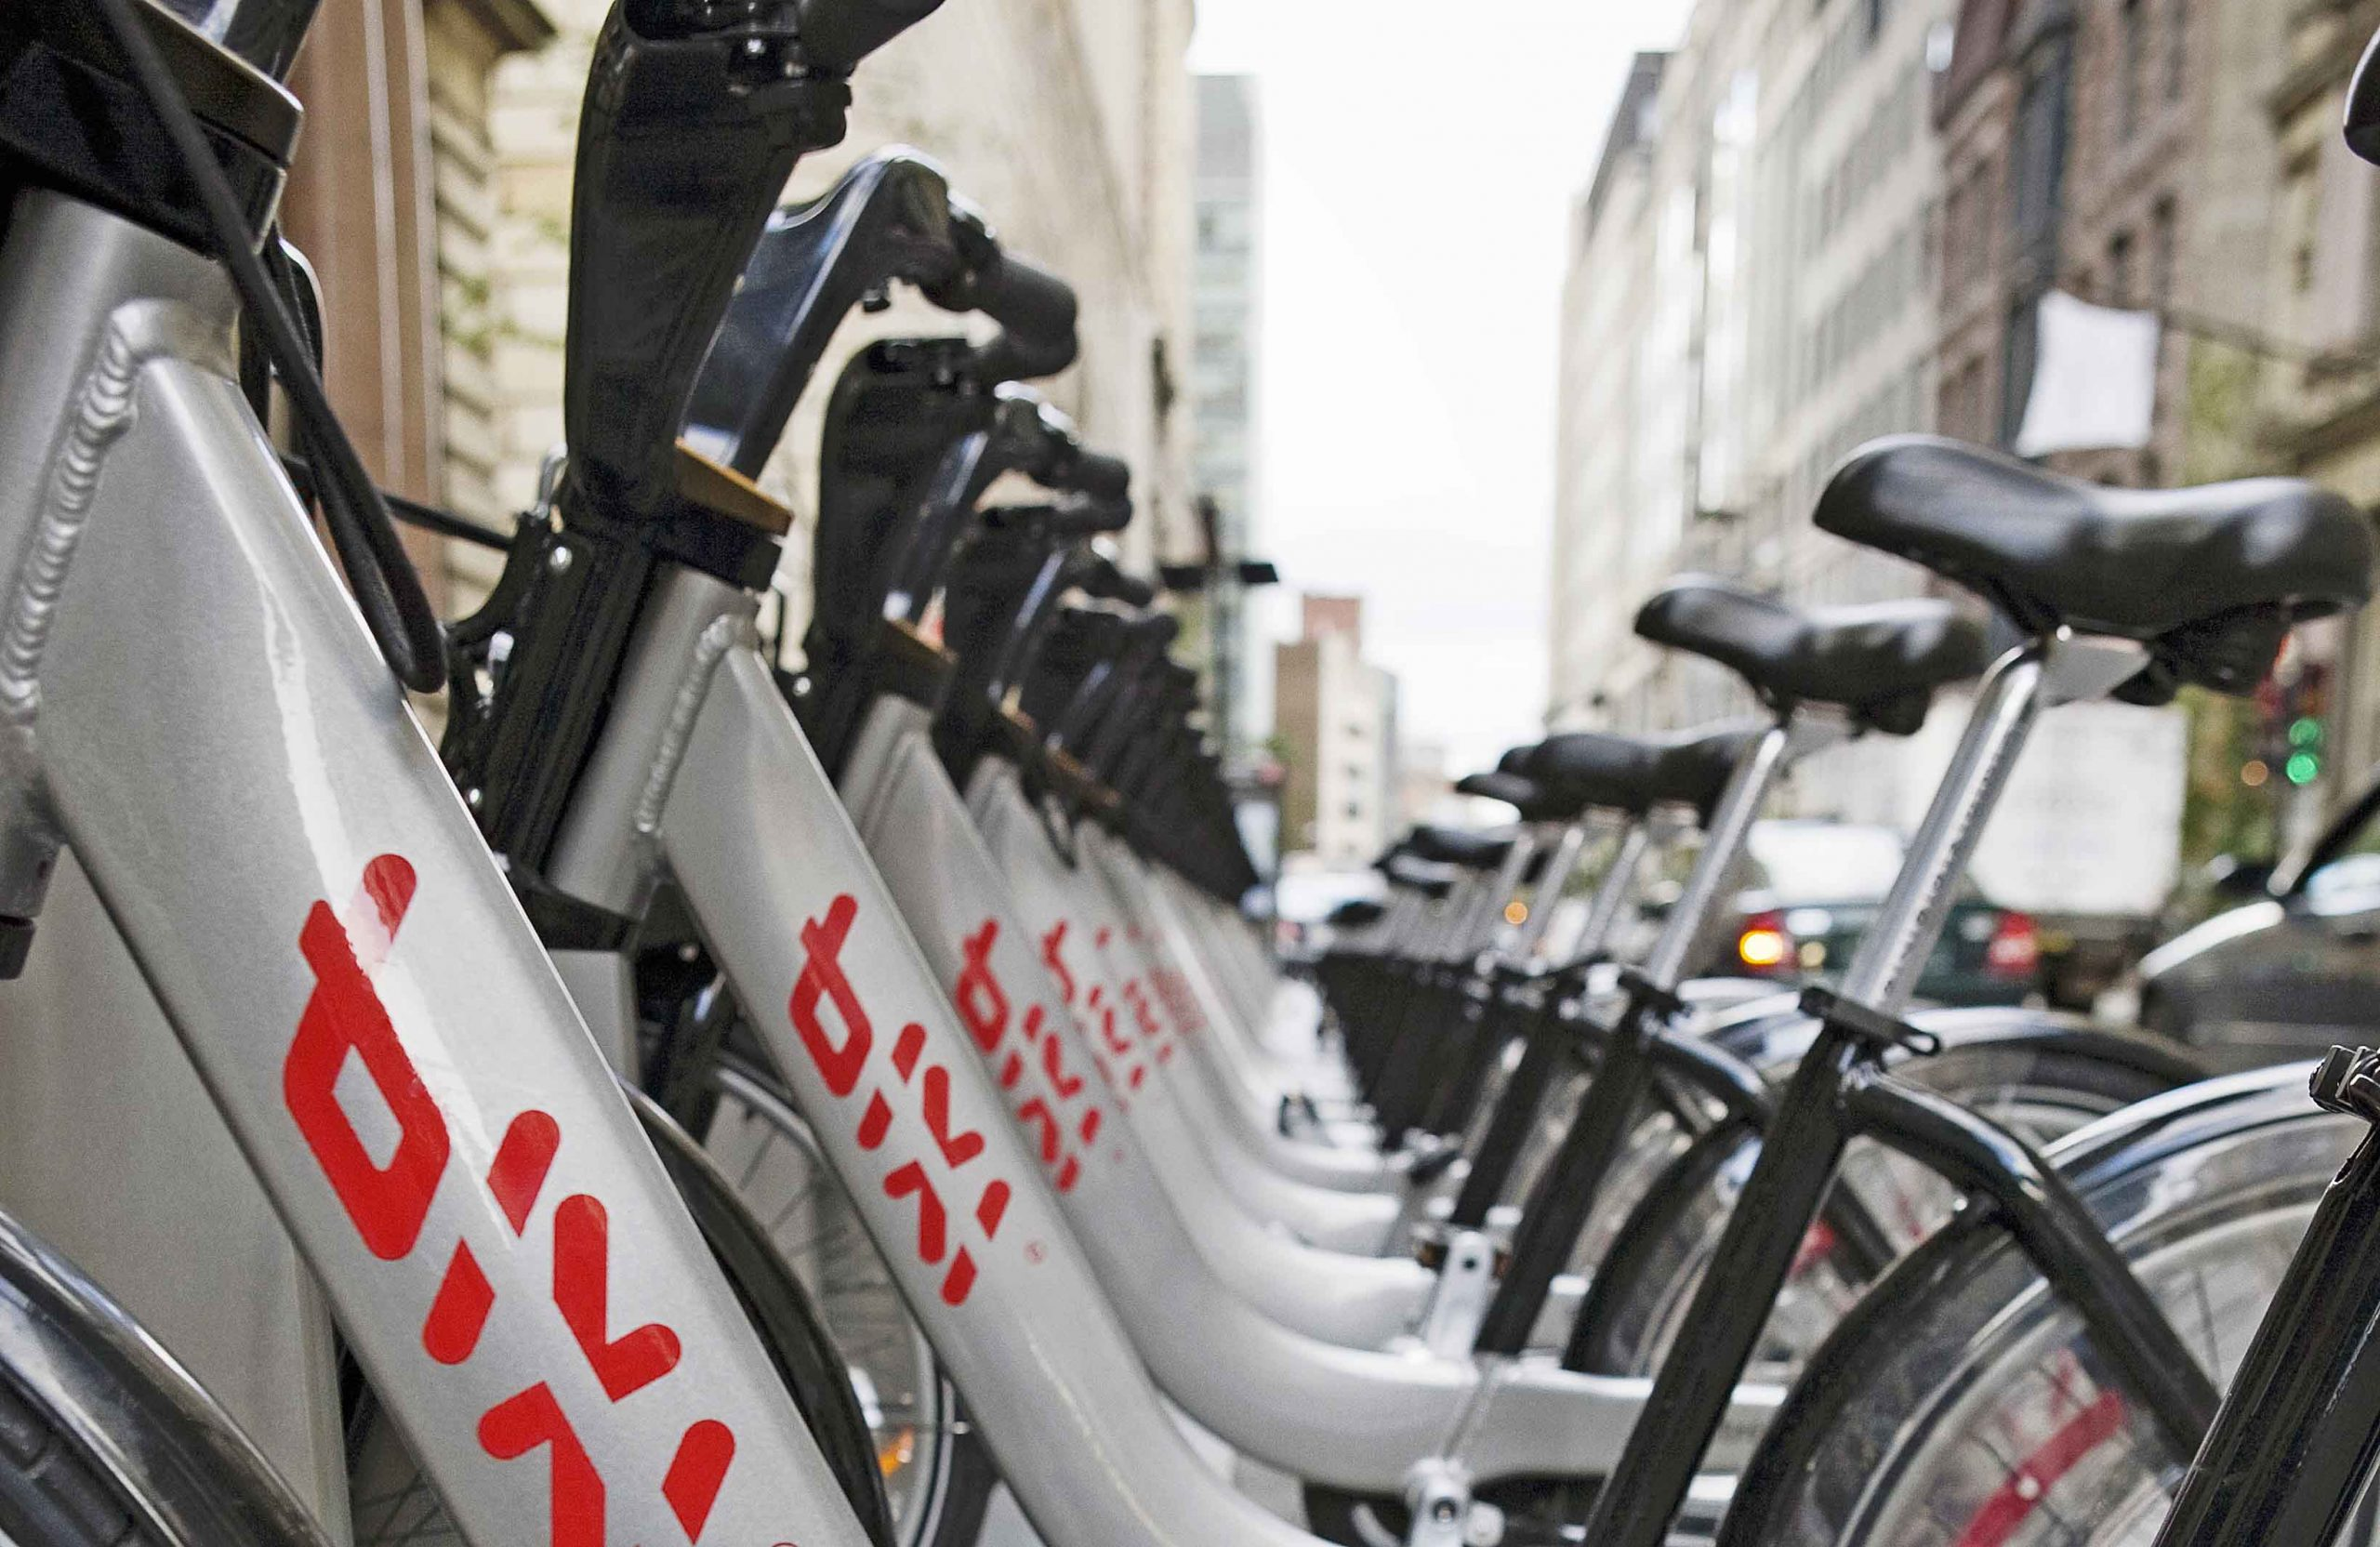 Laval adds two new BIXI stations and 15 more BIXI bikes